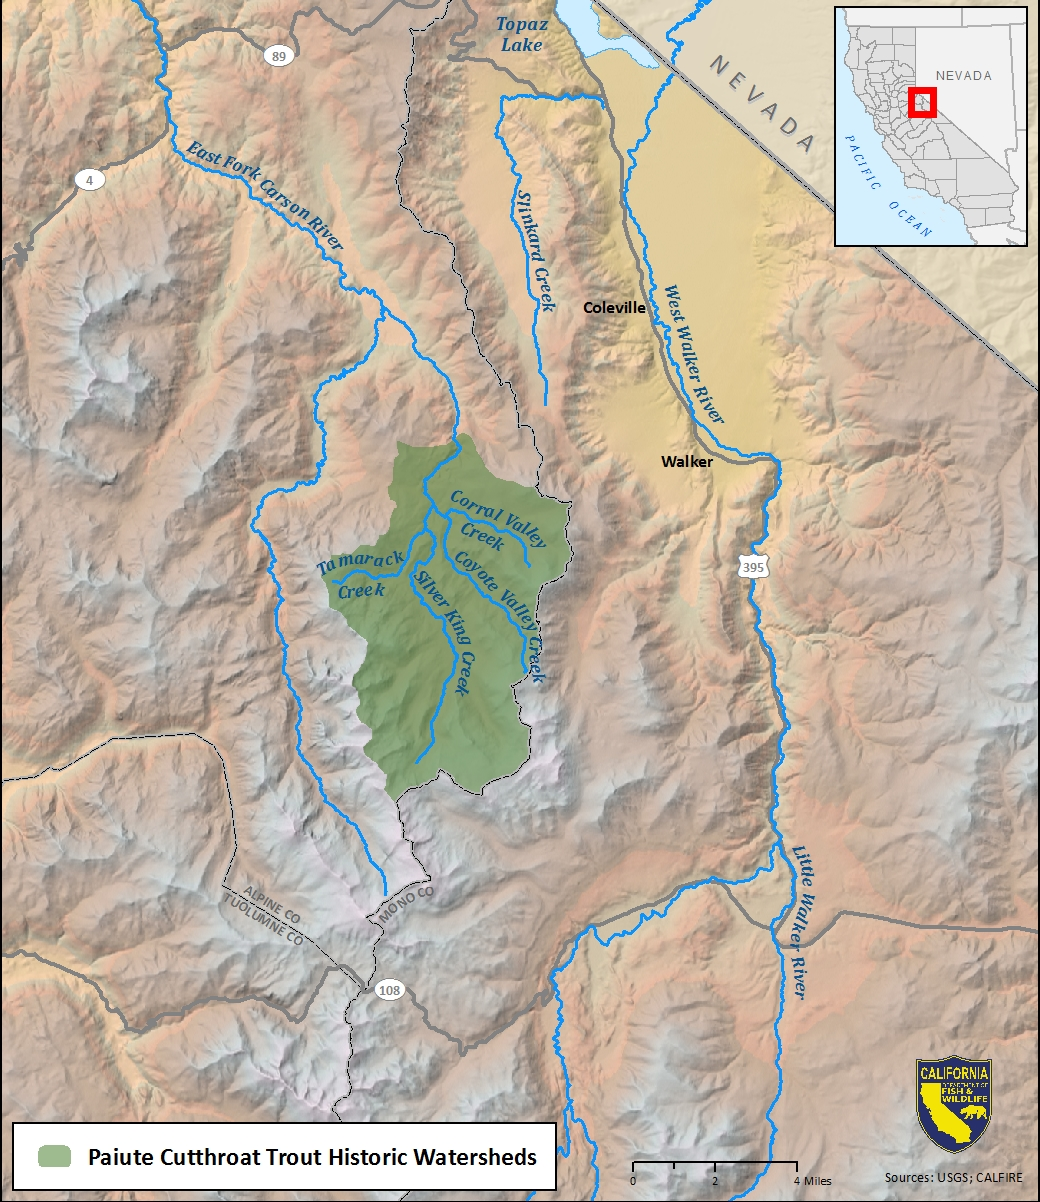 Map of Paiute cutthroat trout historic watersheds - link opens in new window